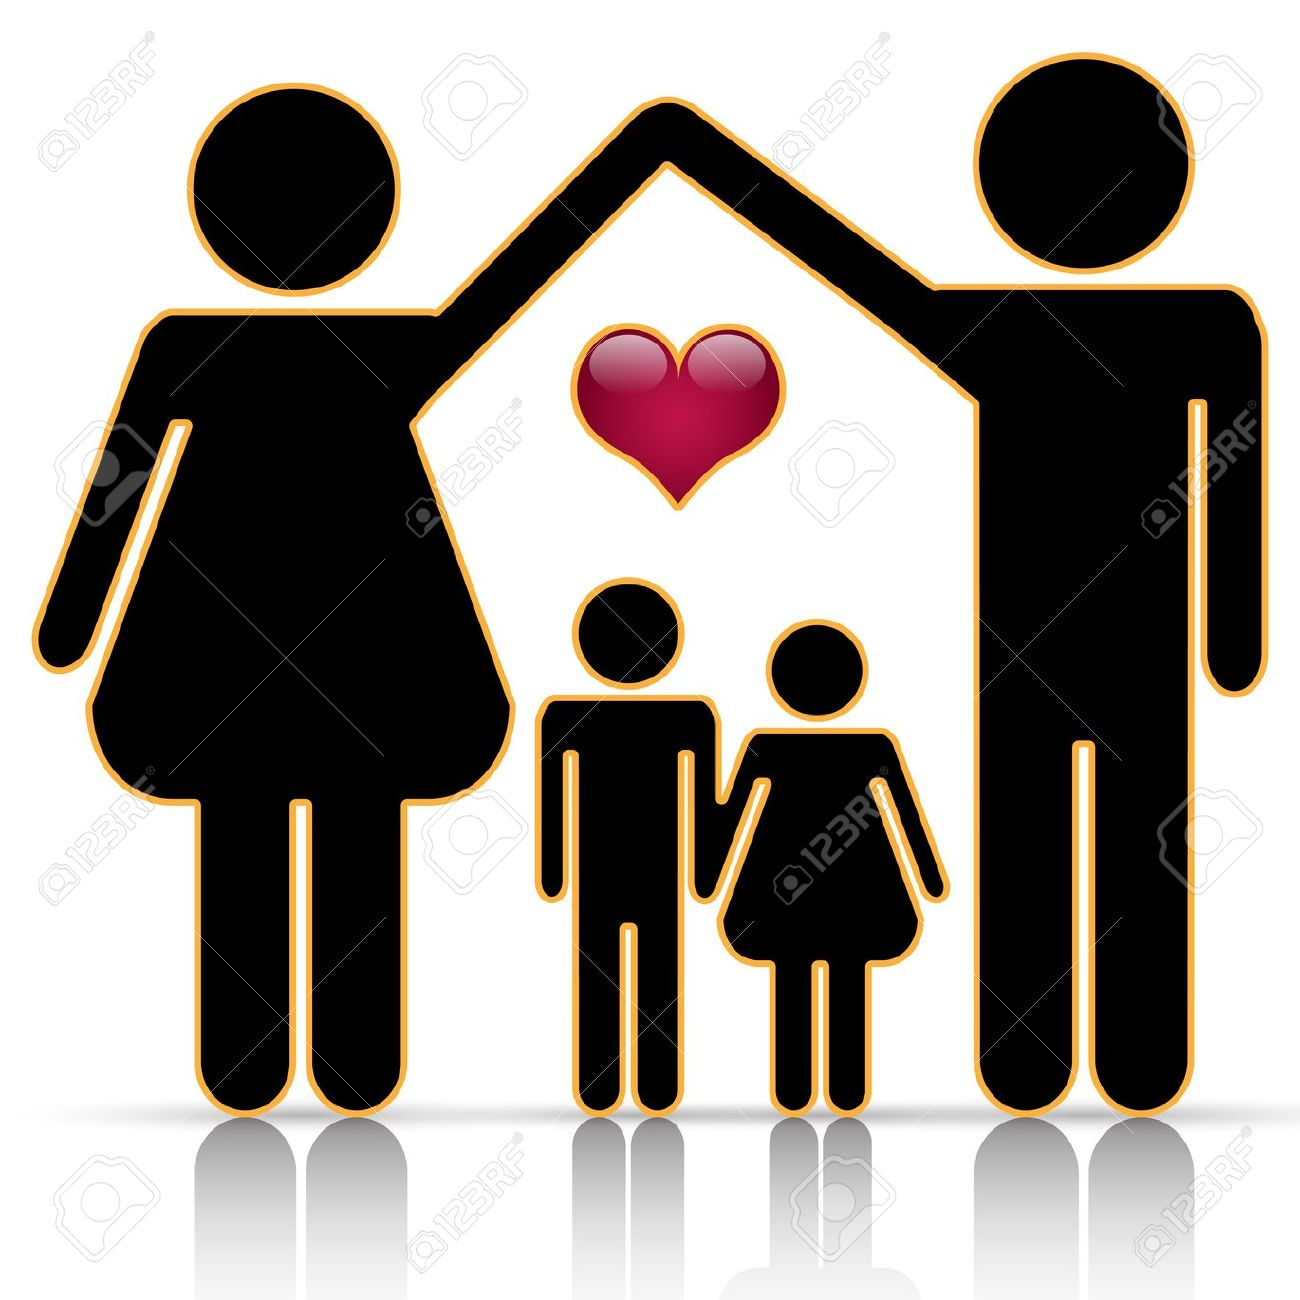 silhouette family clipart at getdrawings com free for personal use rh getdrawings com free clipart of family trees free clipart of family members